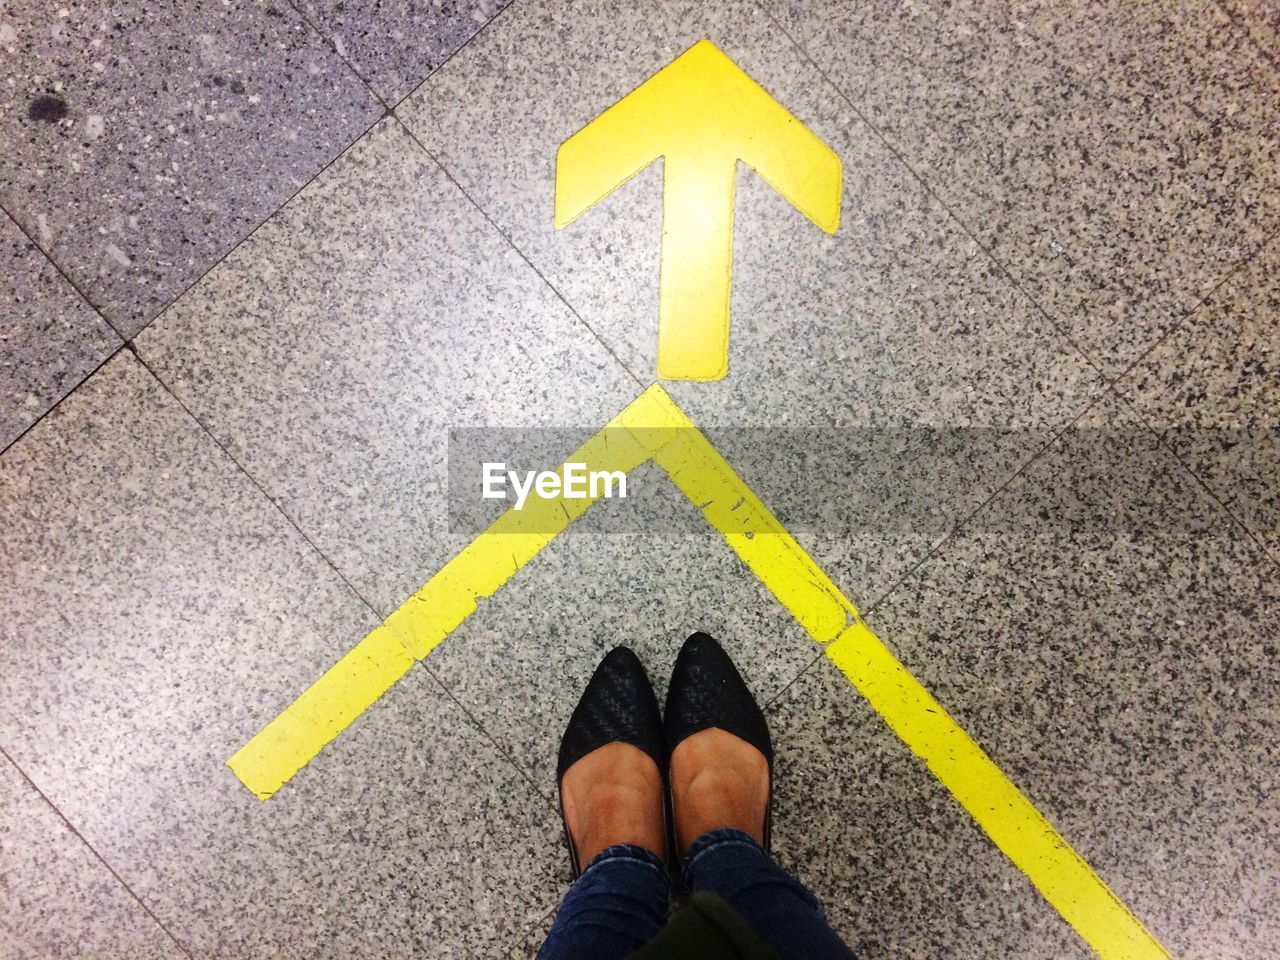 Low Section Of Woman Wearing Shoes Standing By Arrow Sign On Tiled Floor